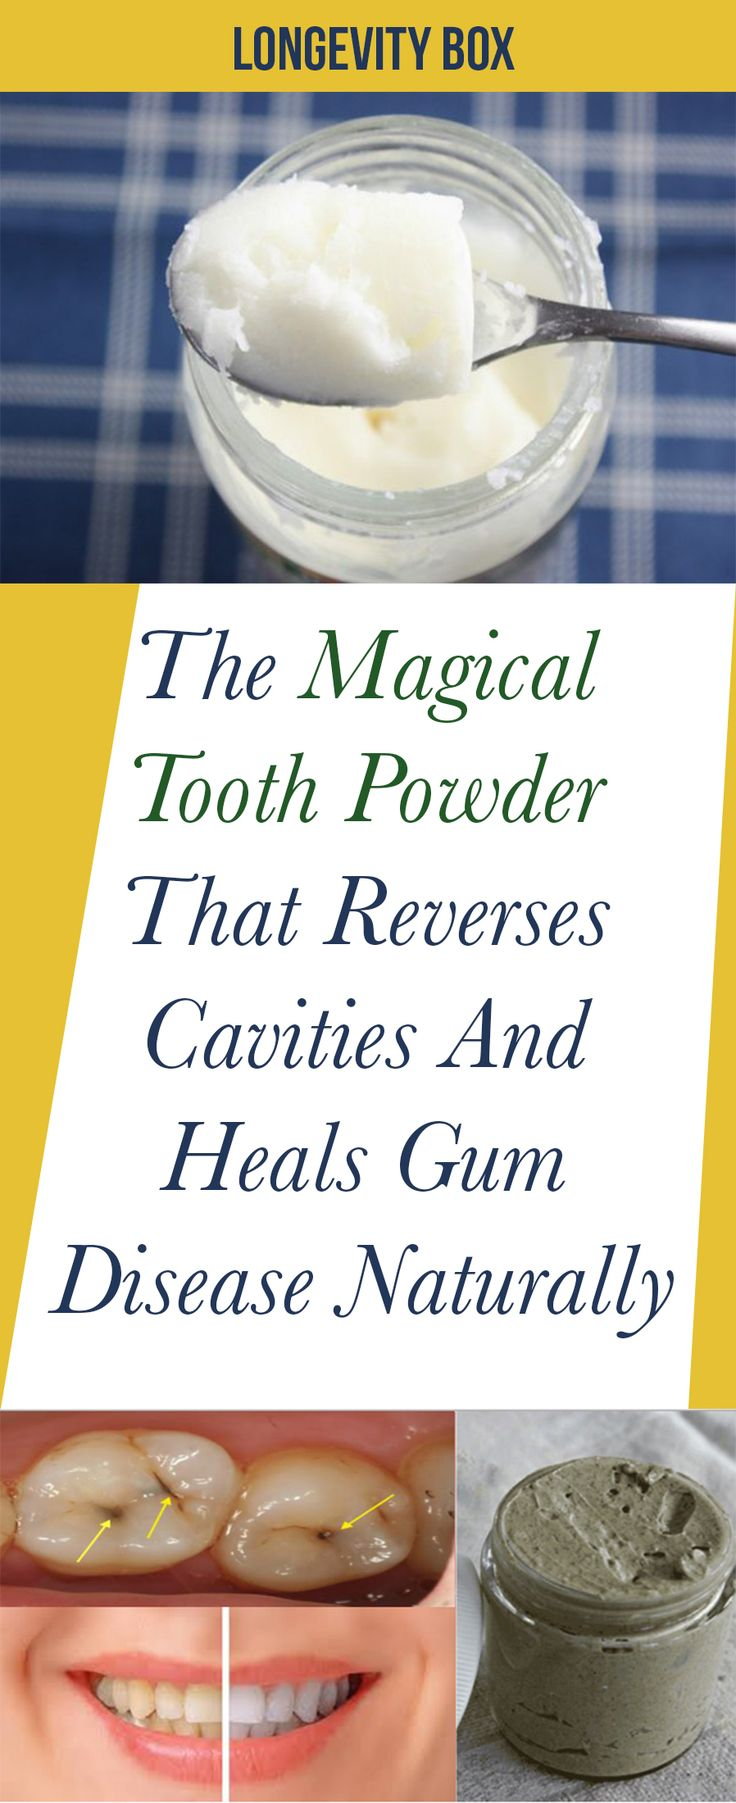 The Magical Tooth Powder That Reverses Cavities And Heals